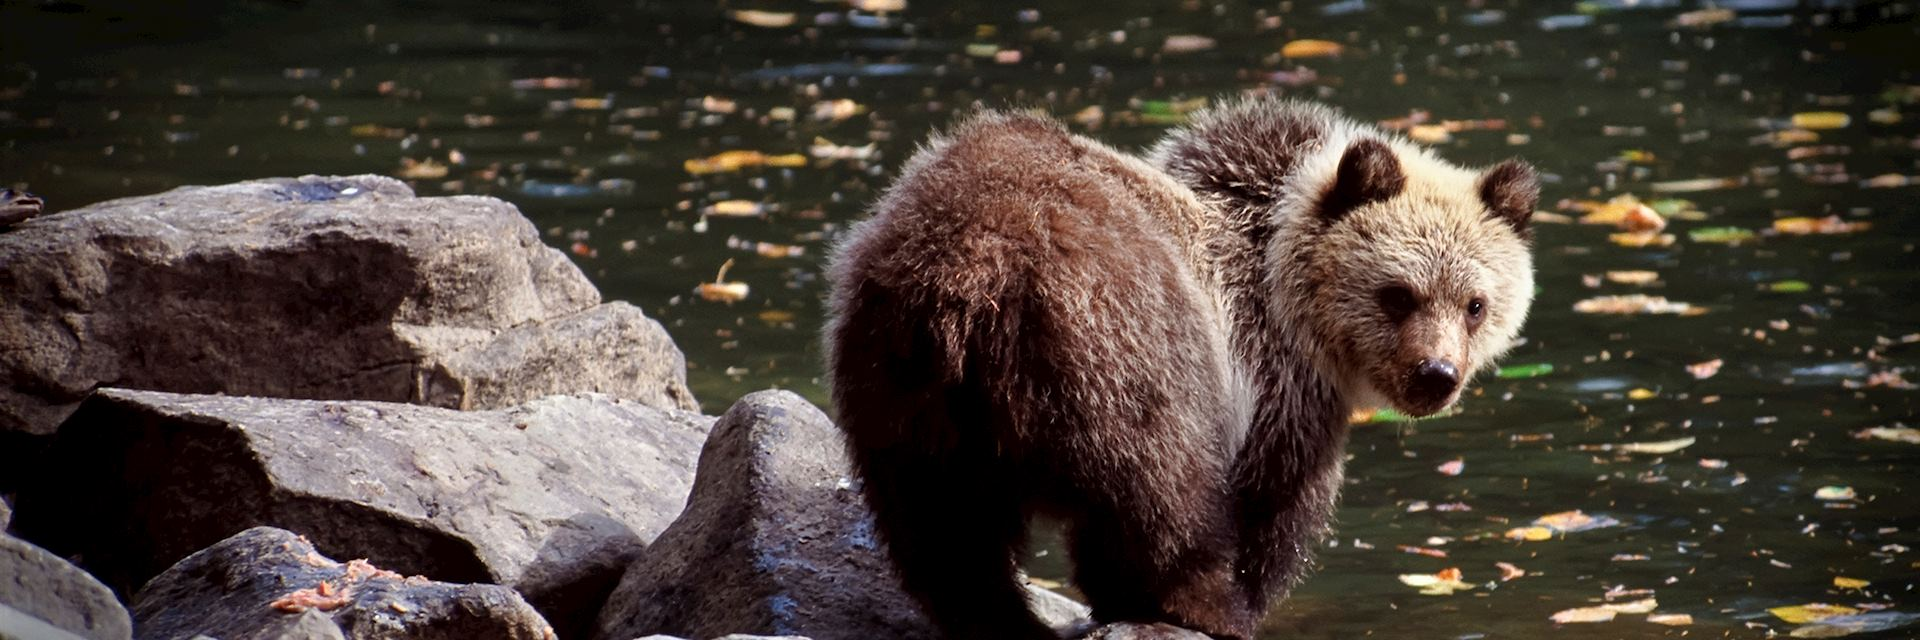 Grizzly bear, Canada